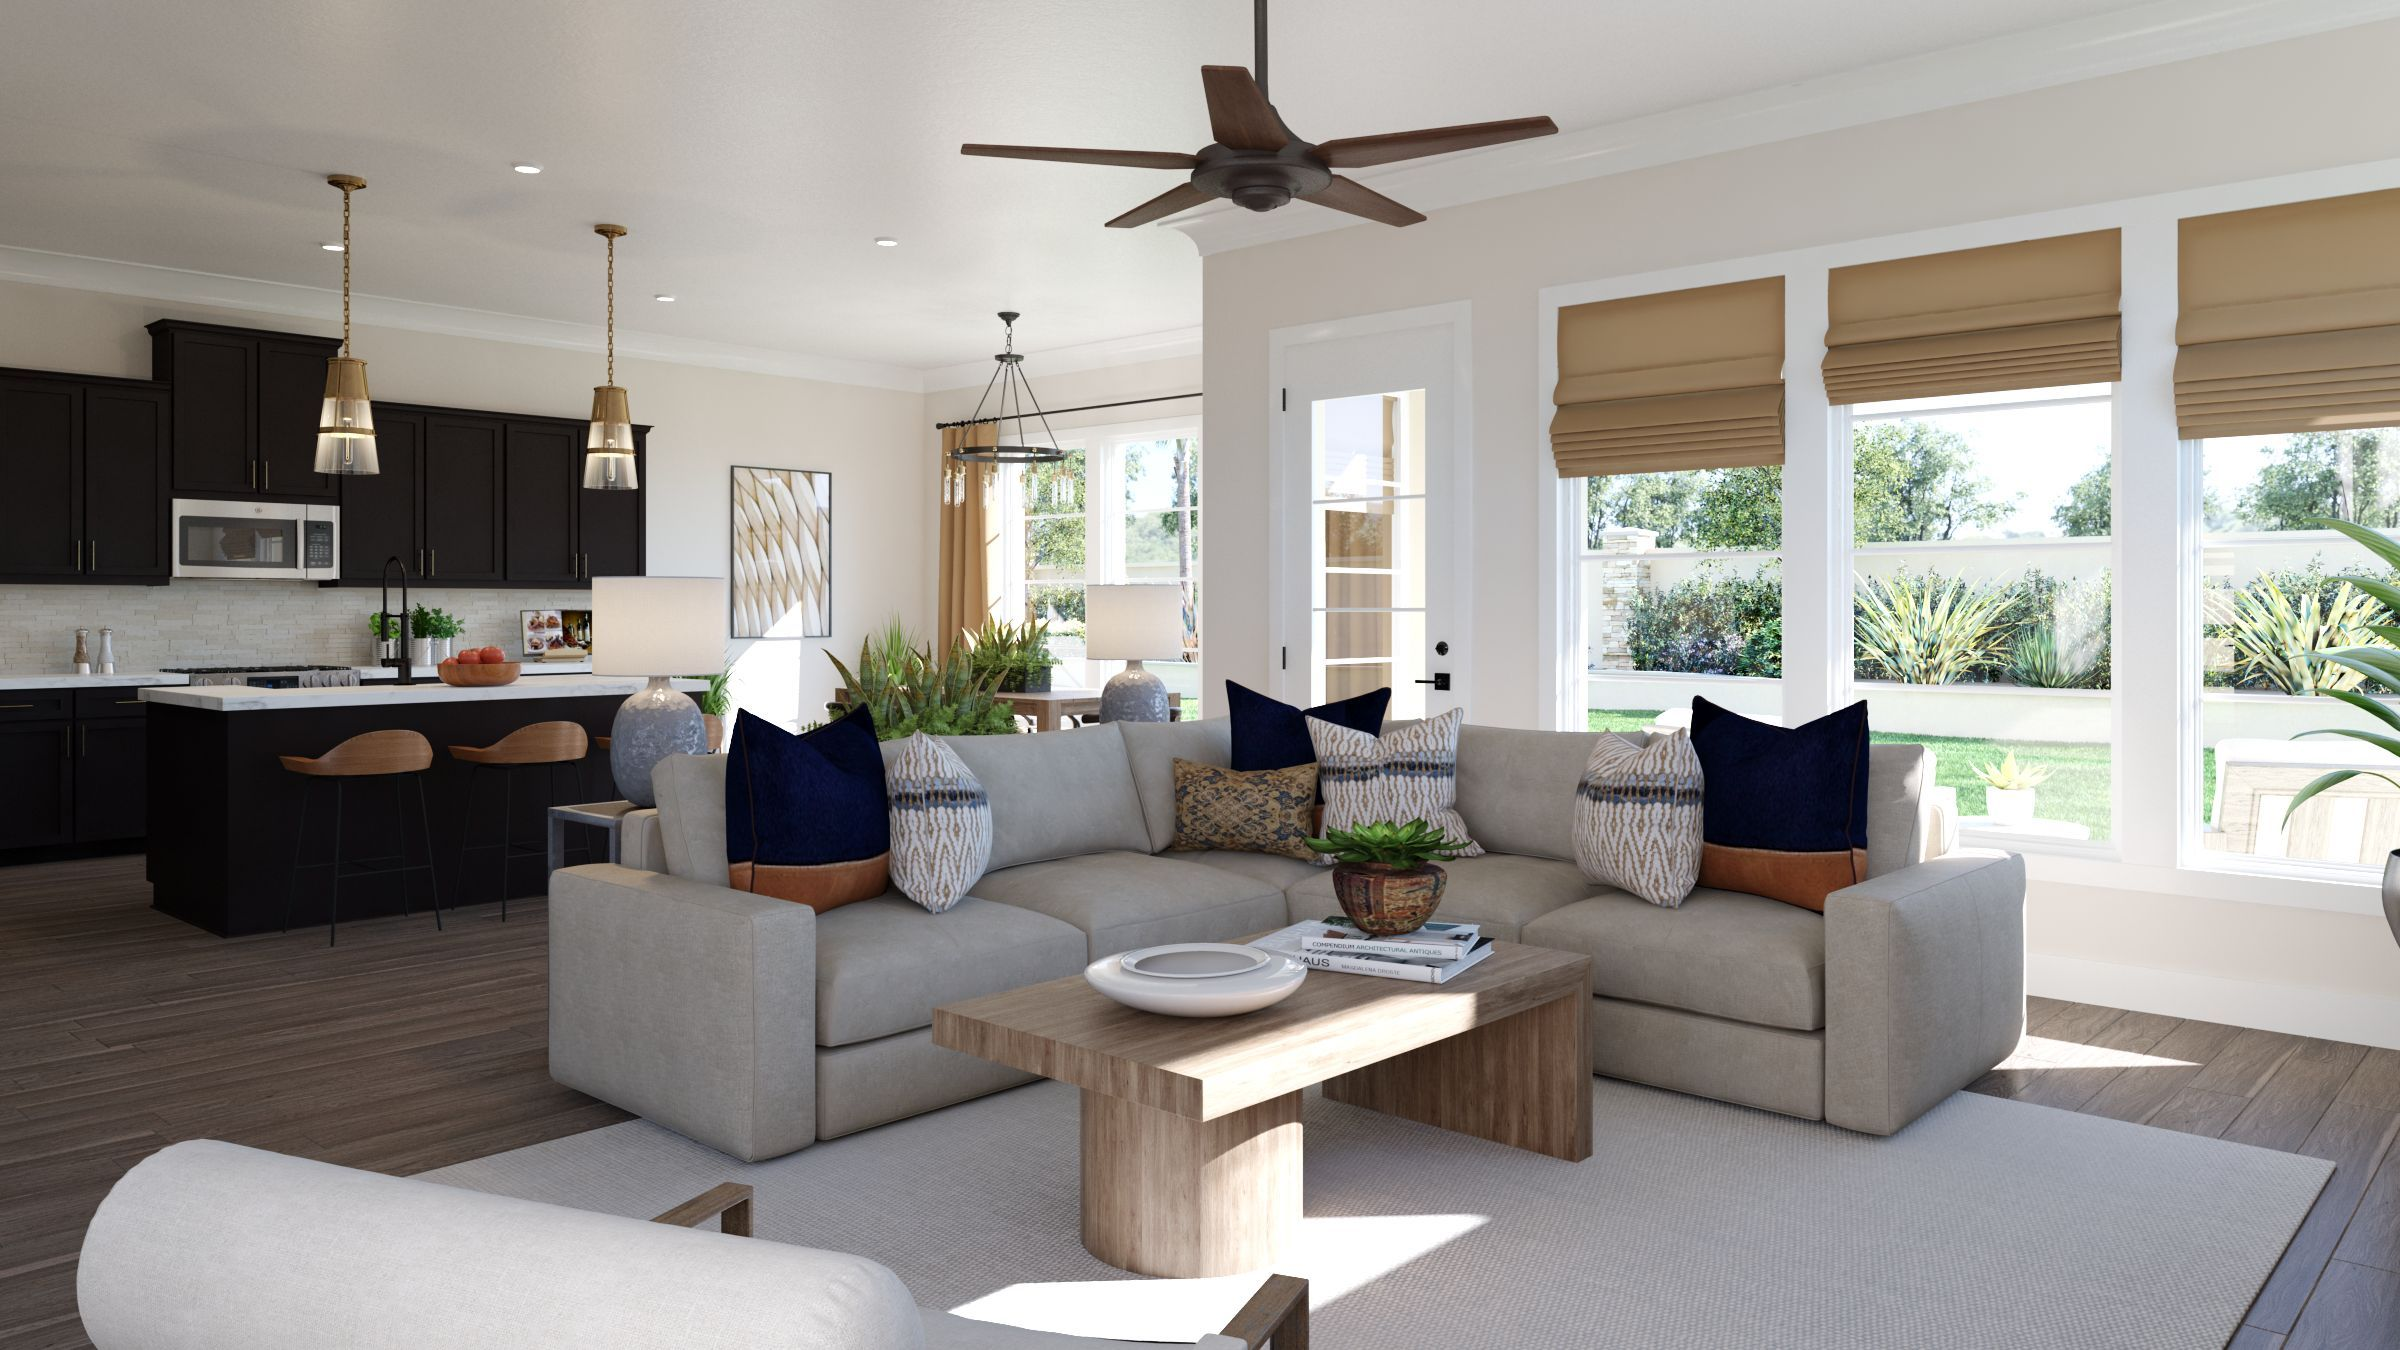 Living Area featured in the Shiloh By Olivia Clarke Homes  in Dallas, TX